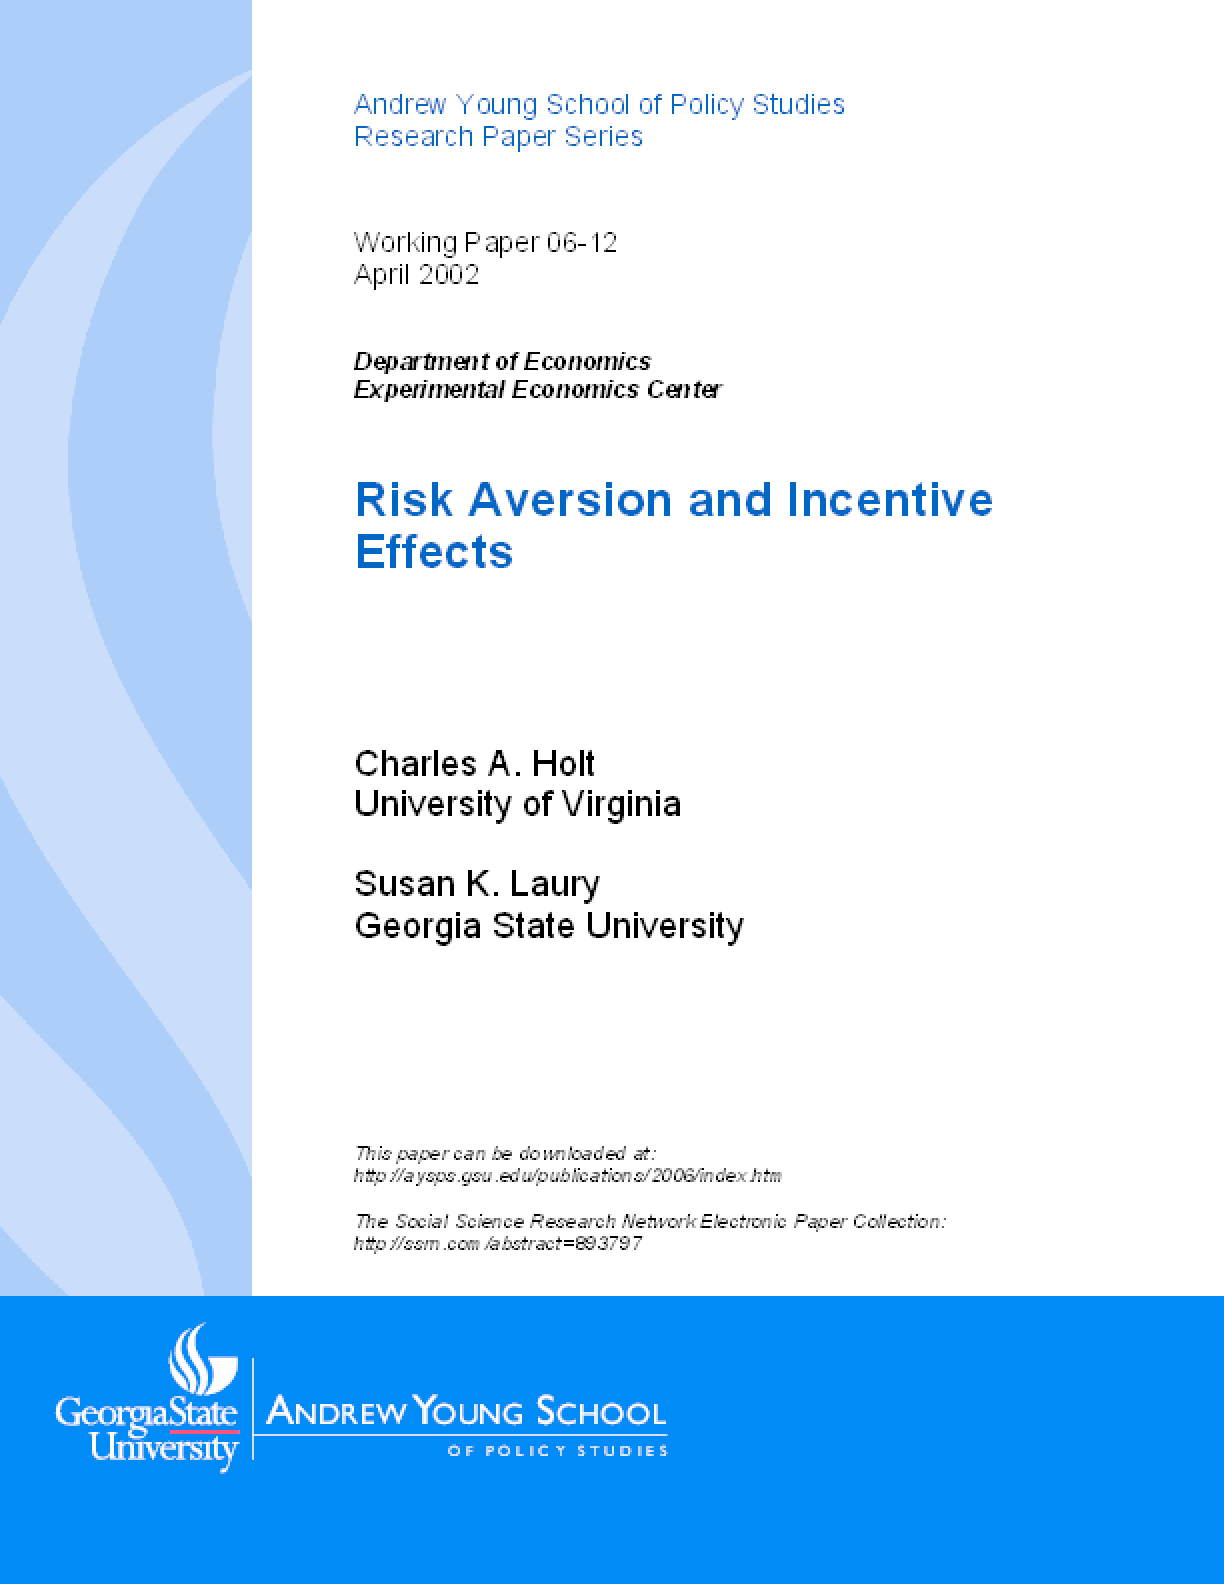 Risk Aversion and Incentive Effects